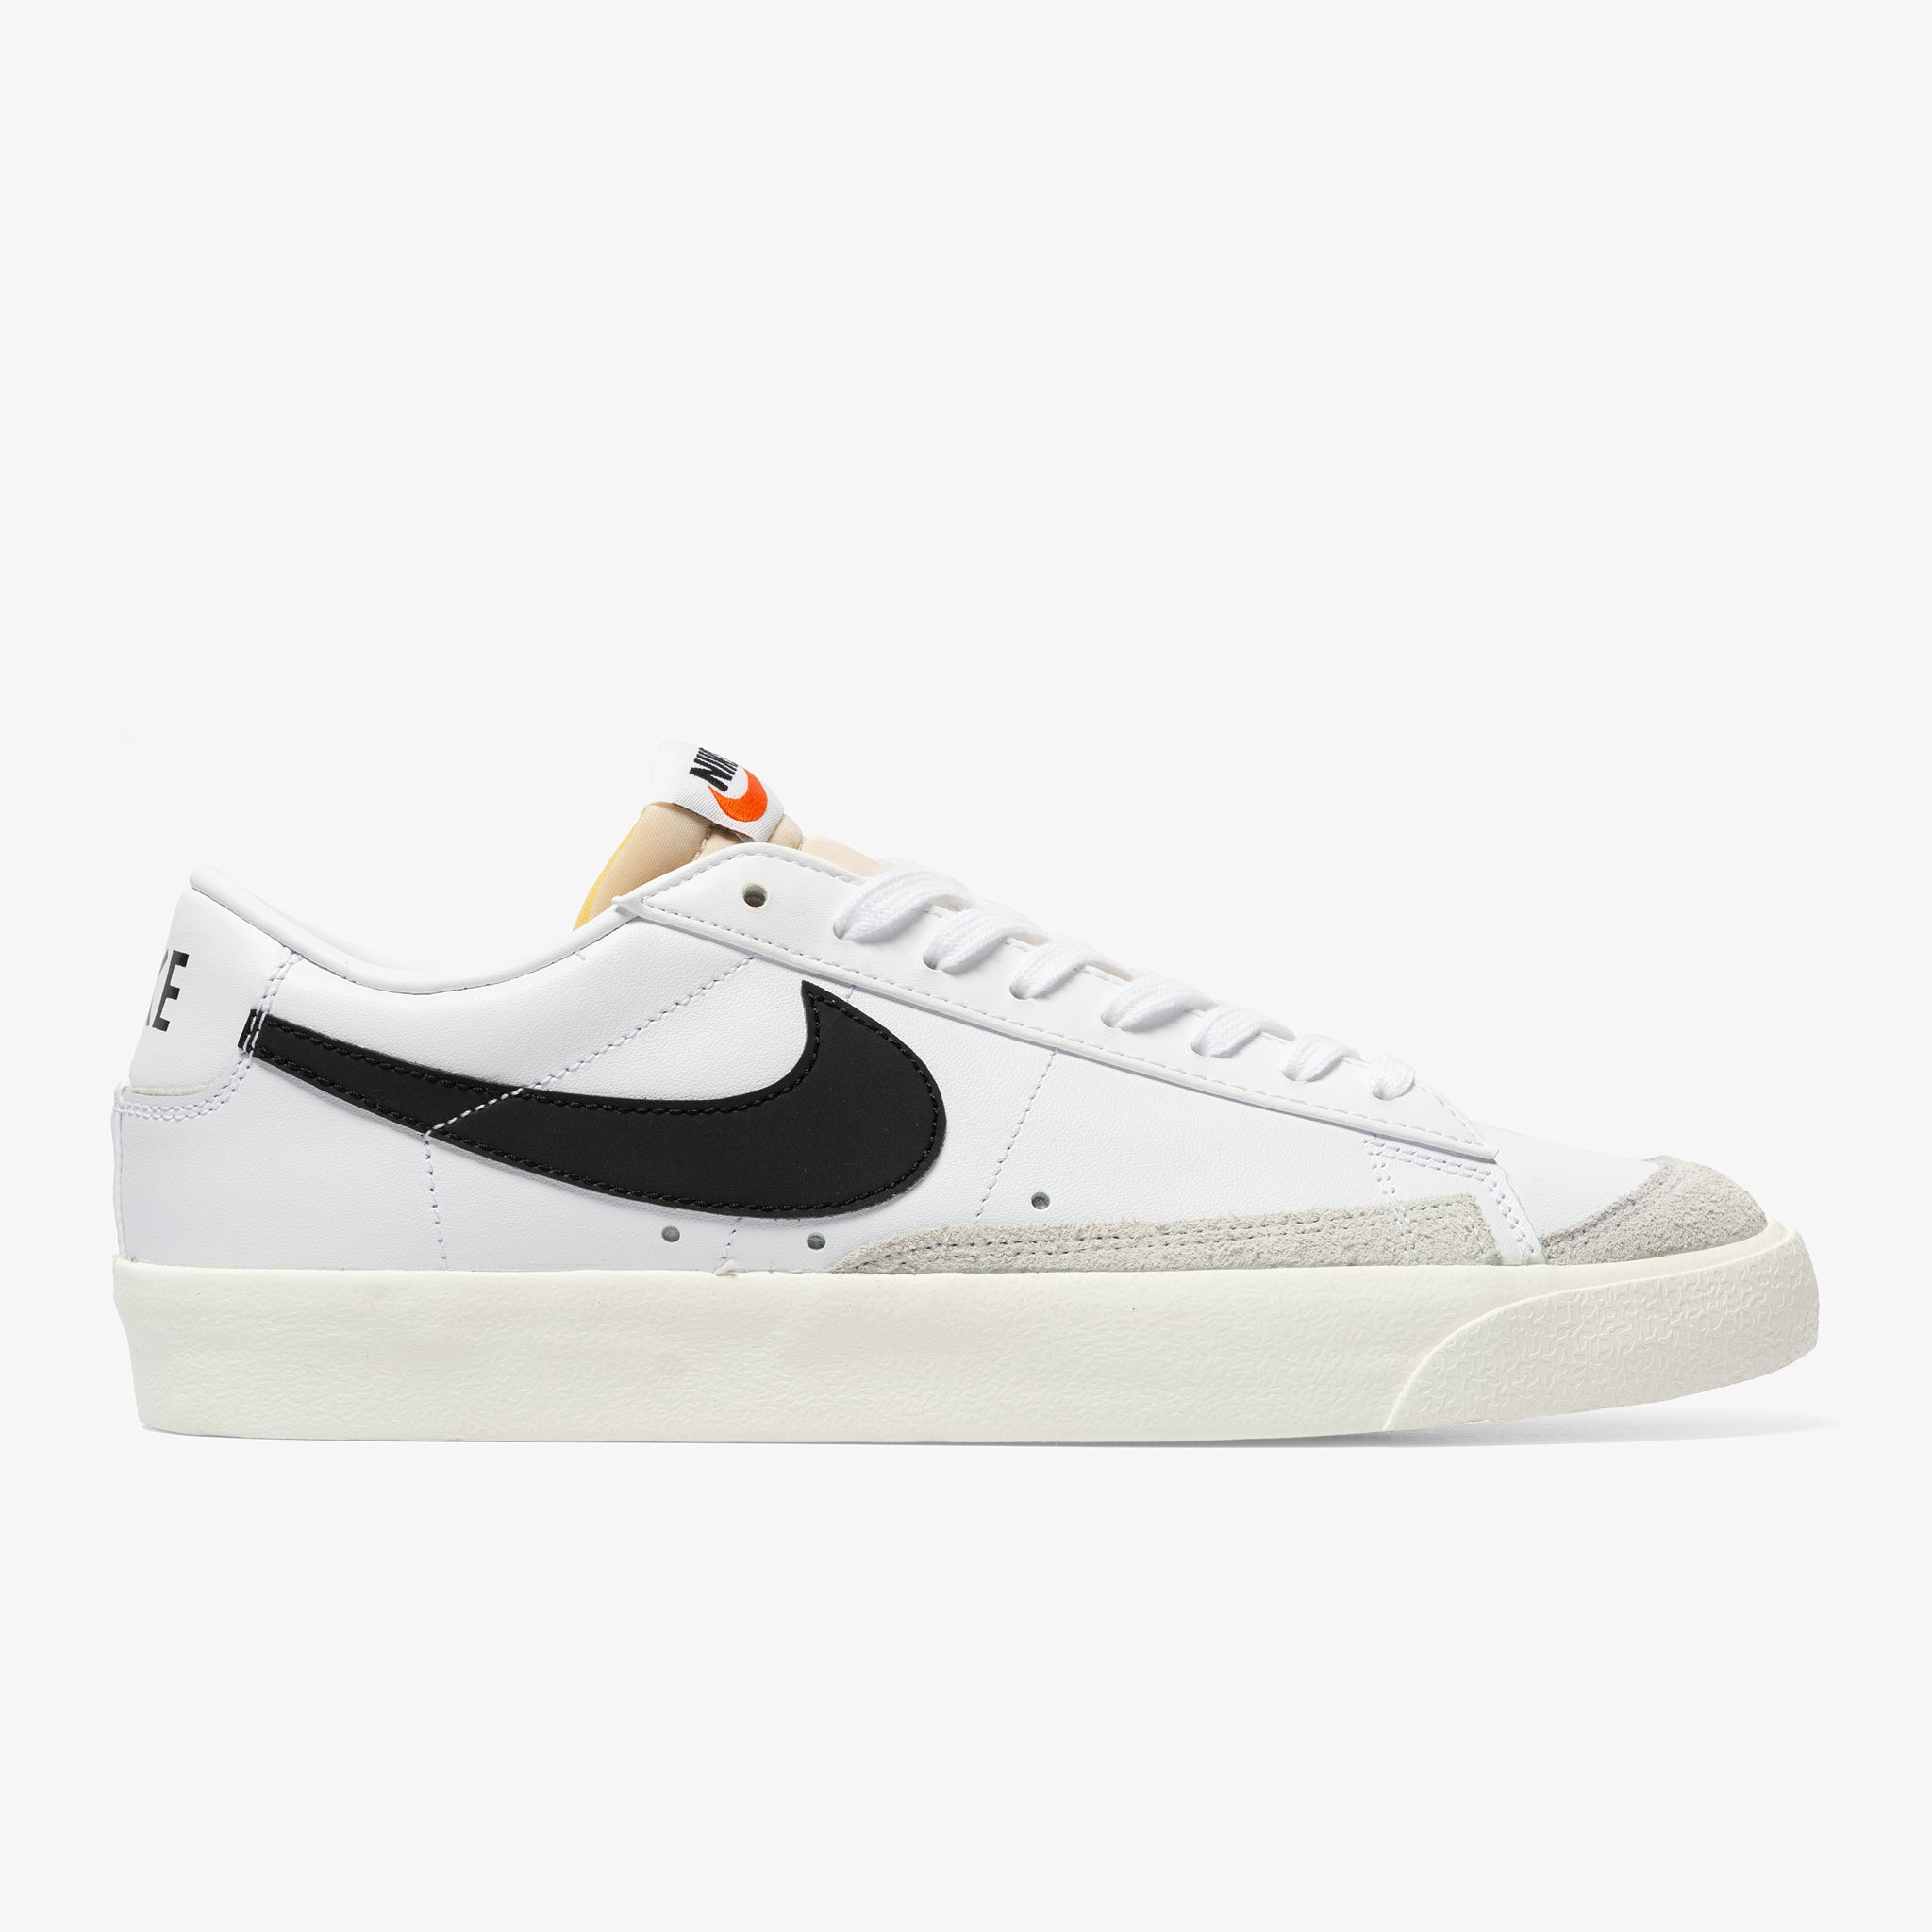 BLAZER LOW '77 VNTG (WHITE/BLACK SAIL)